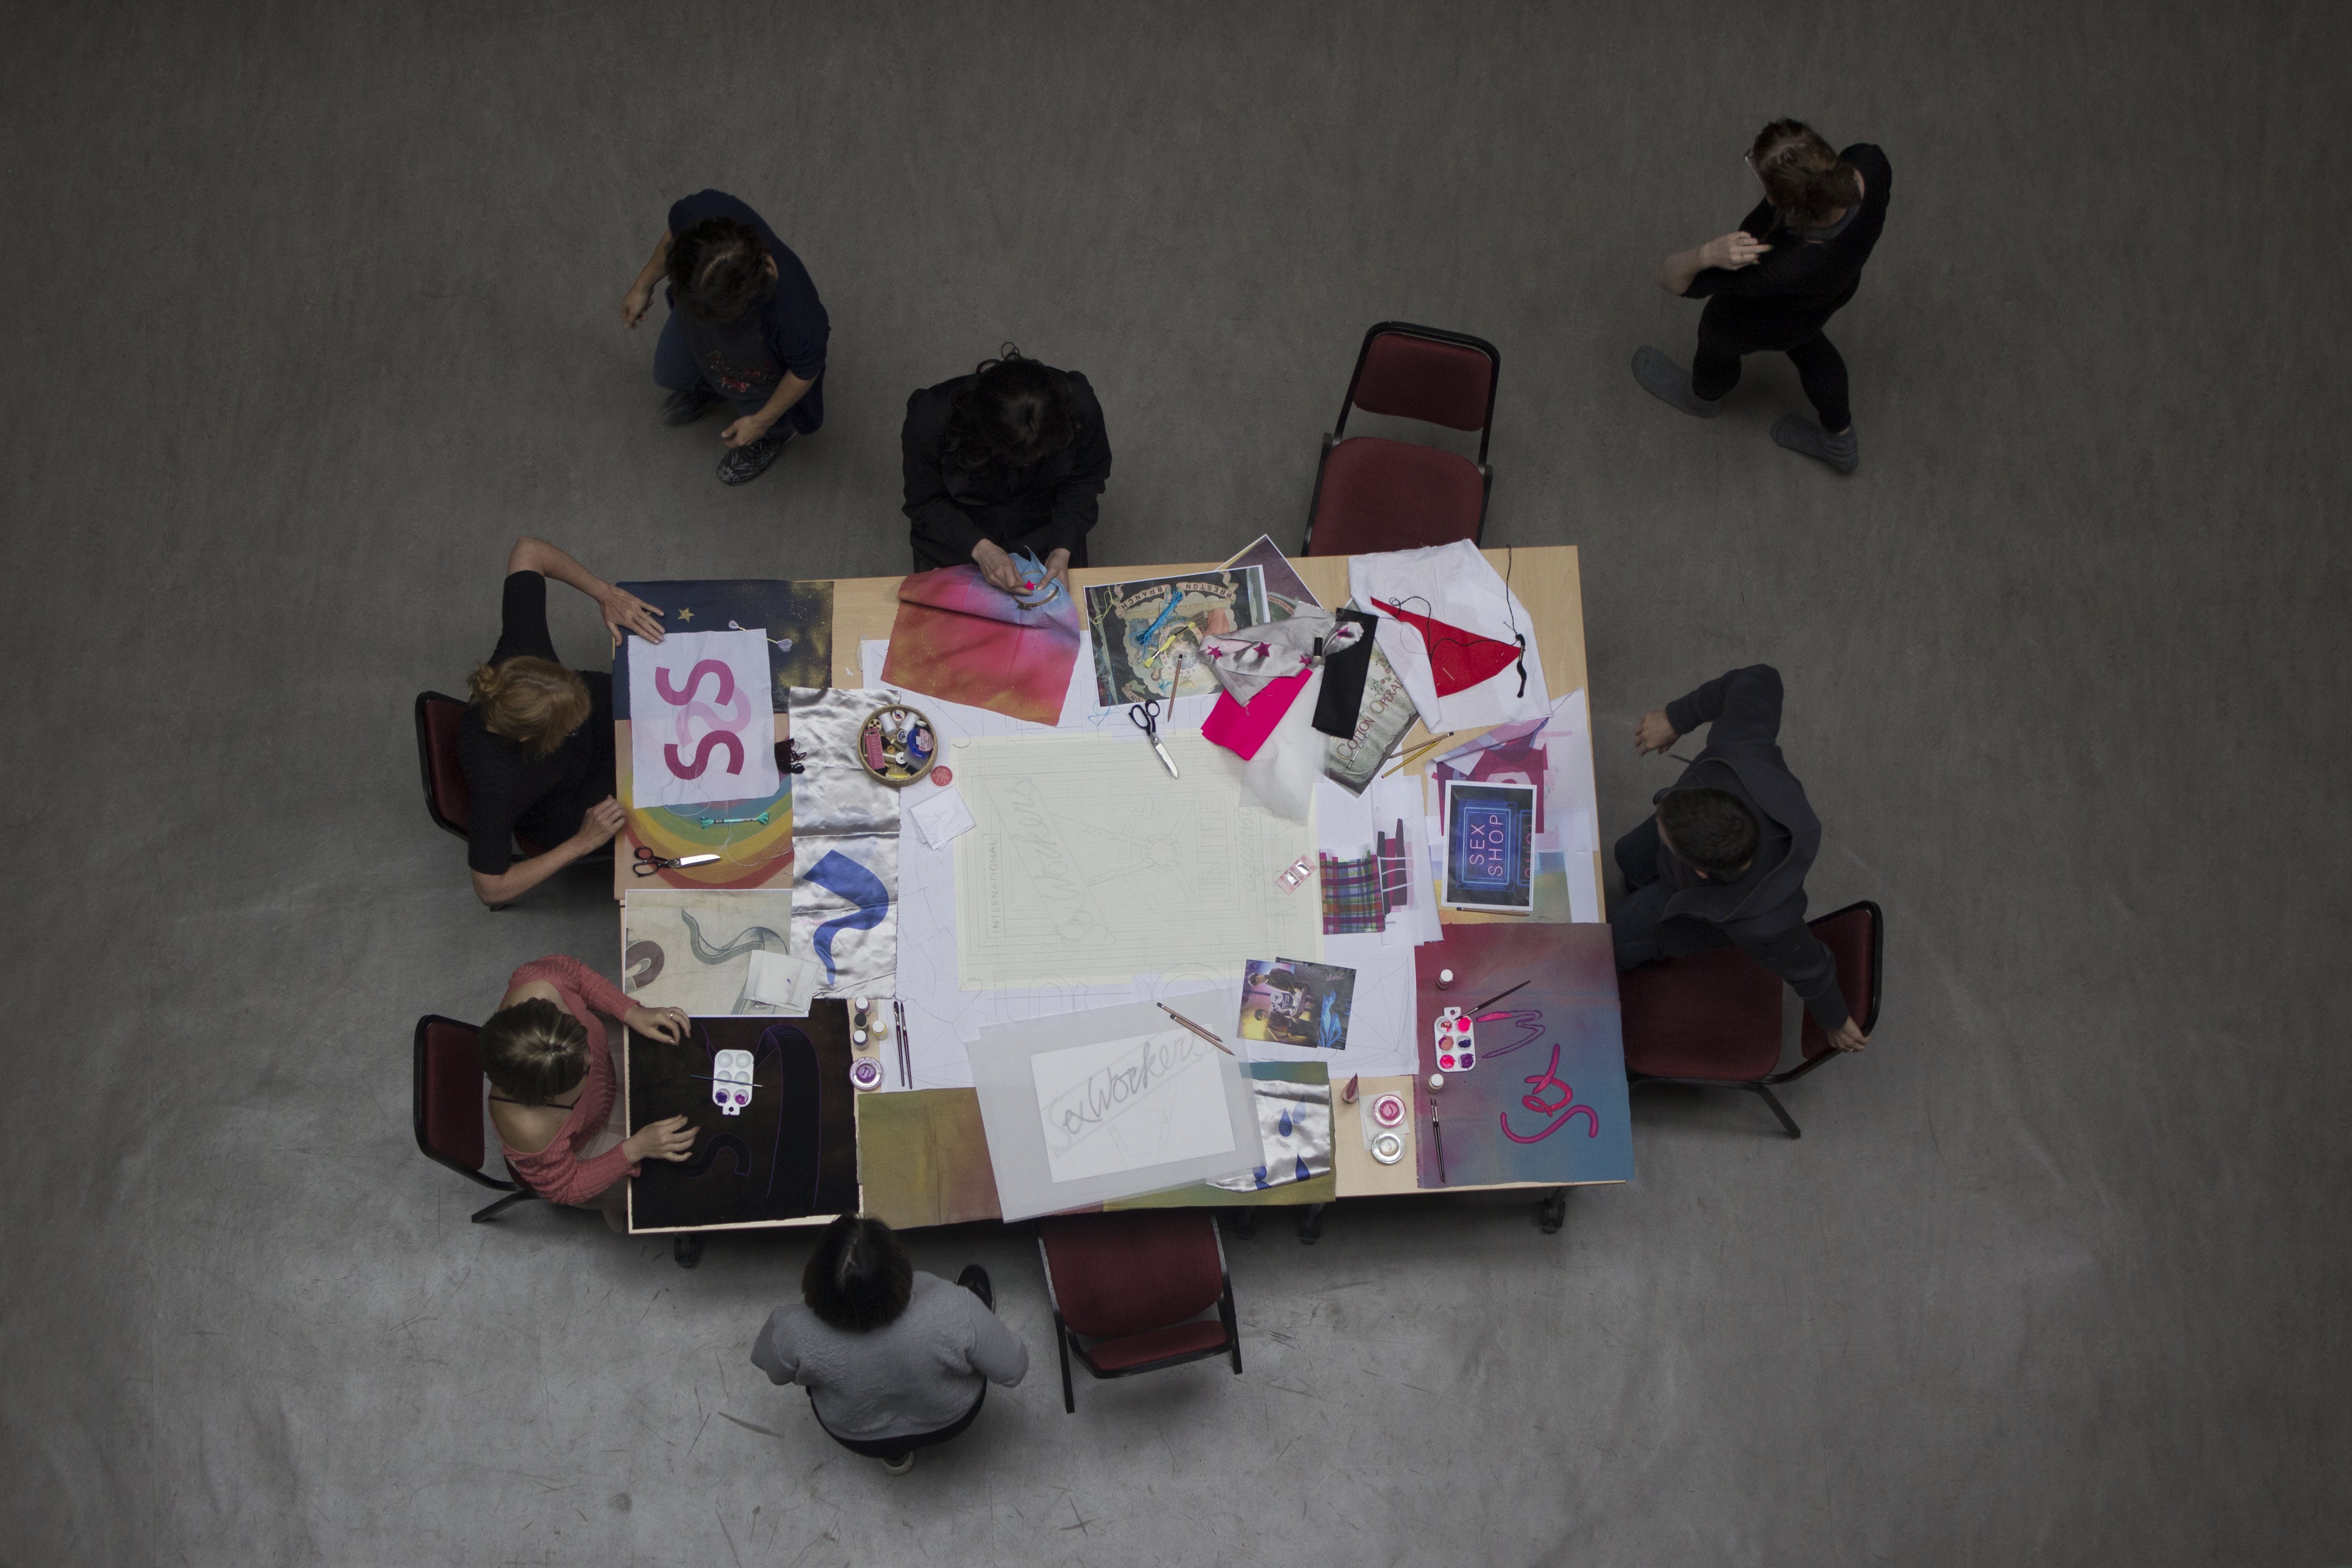 Petra Bauer and SCOT-PEP, *Nothing about us without us*, banner making workshop, August 2017. Image courtesy of the artist, Scot-Pep, Collective and HER.